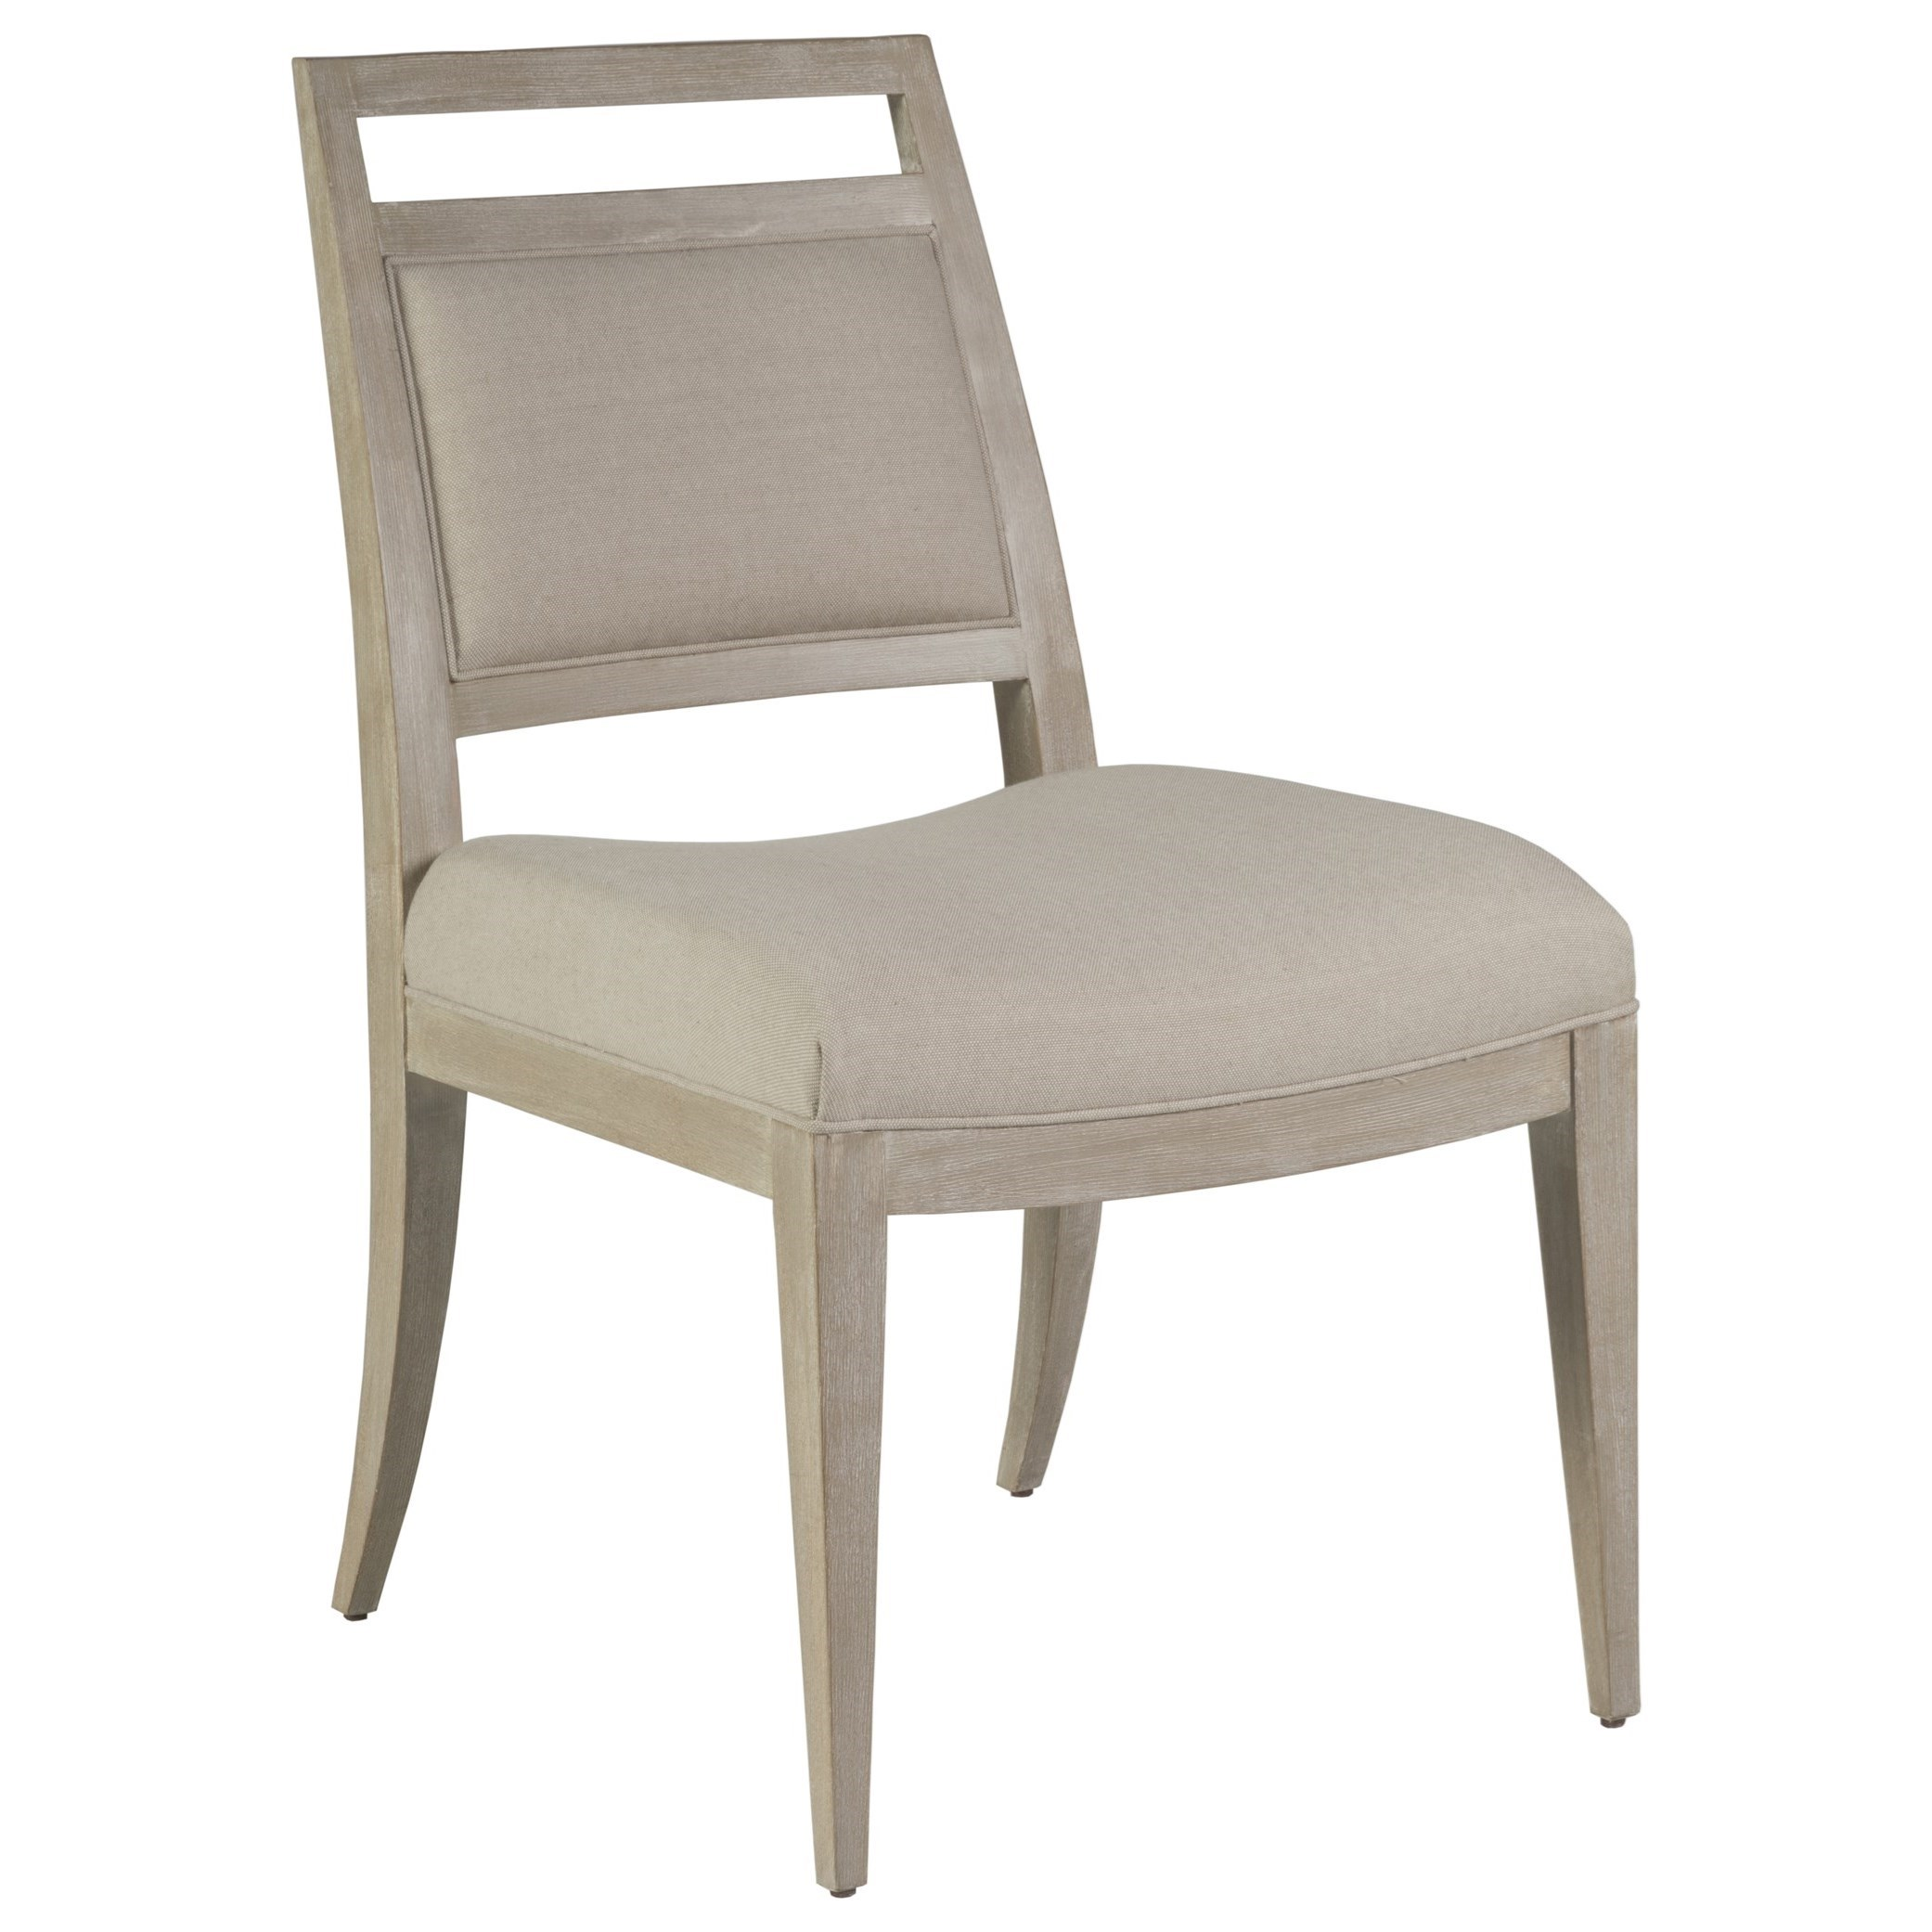 Cohesion Nico Upholstered Side Chair by Artistica at Baer's Furniture